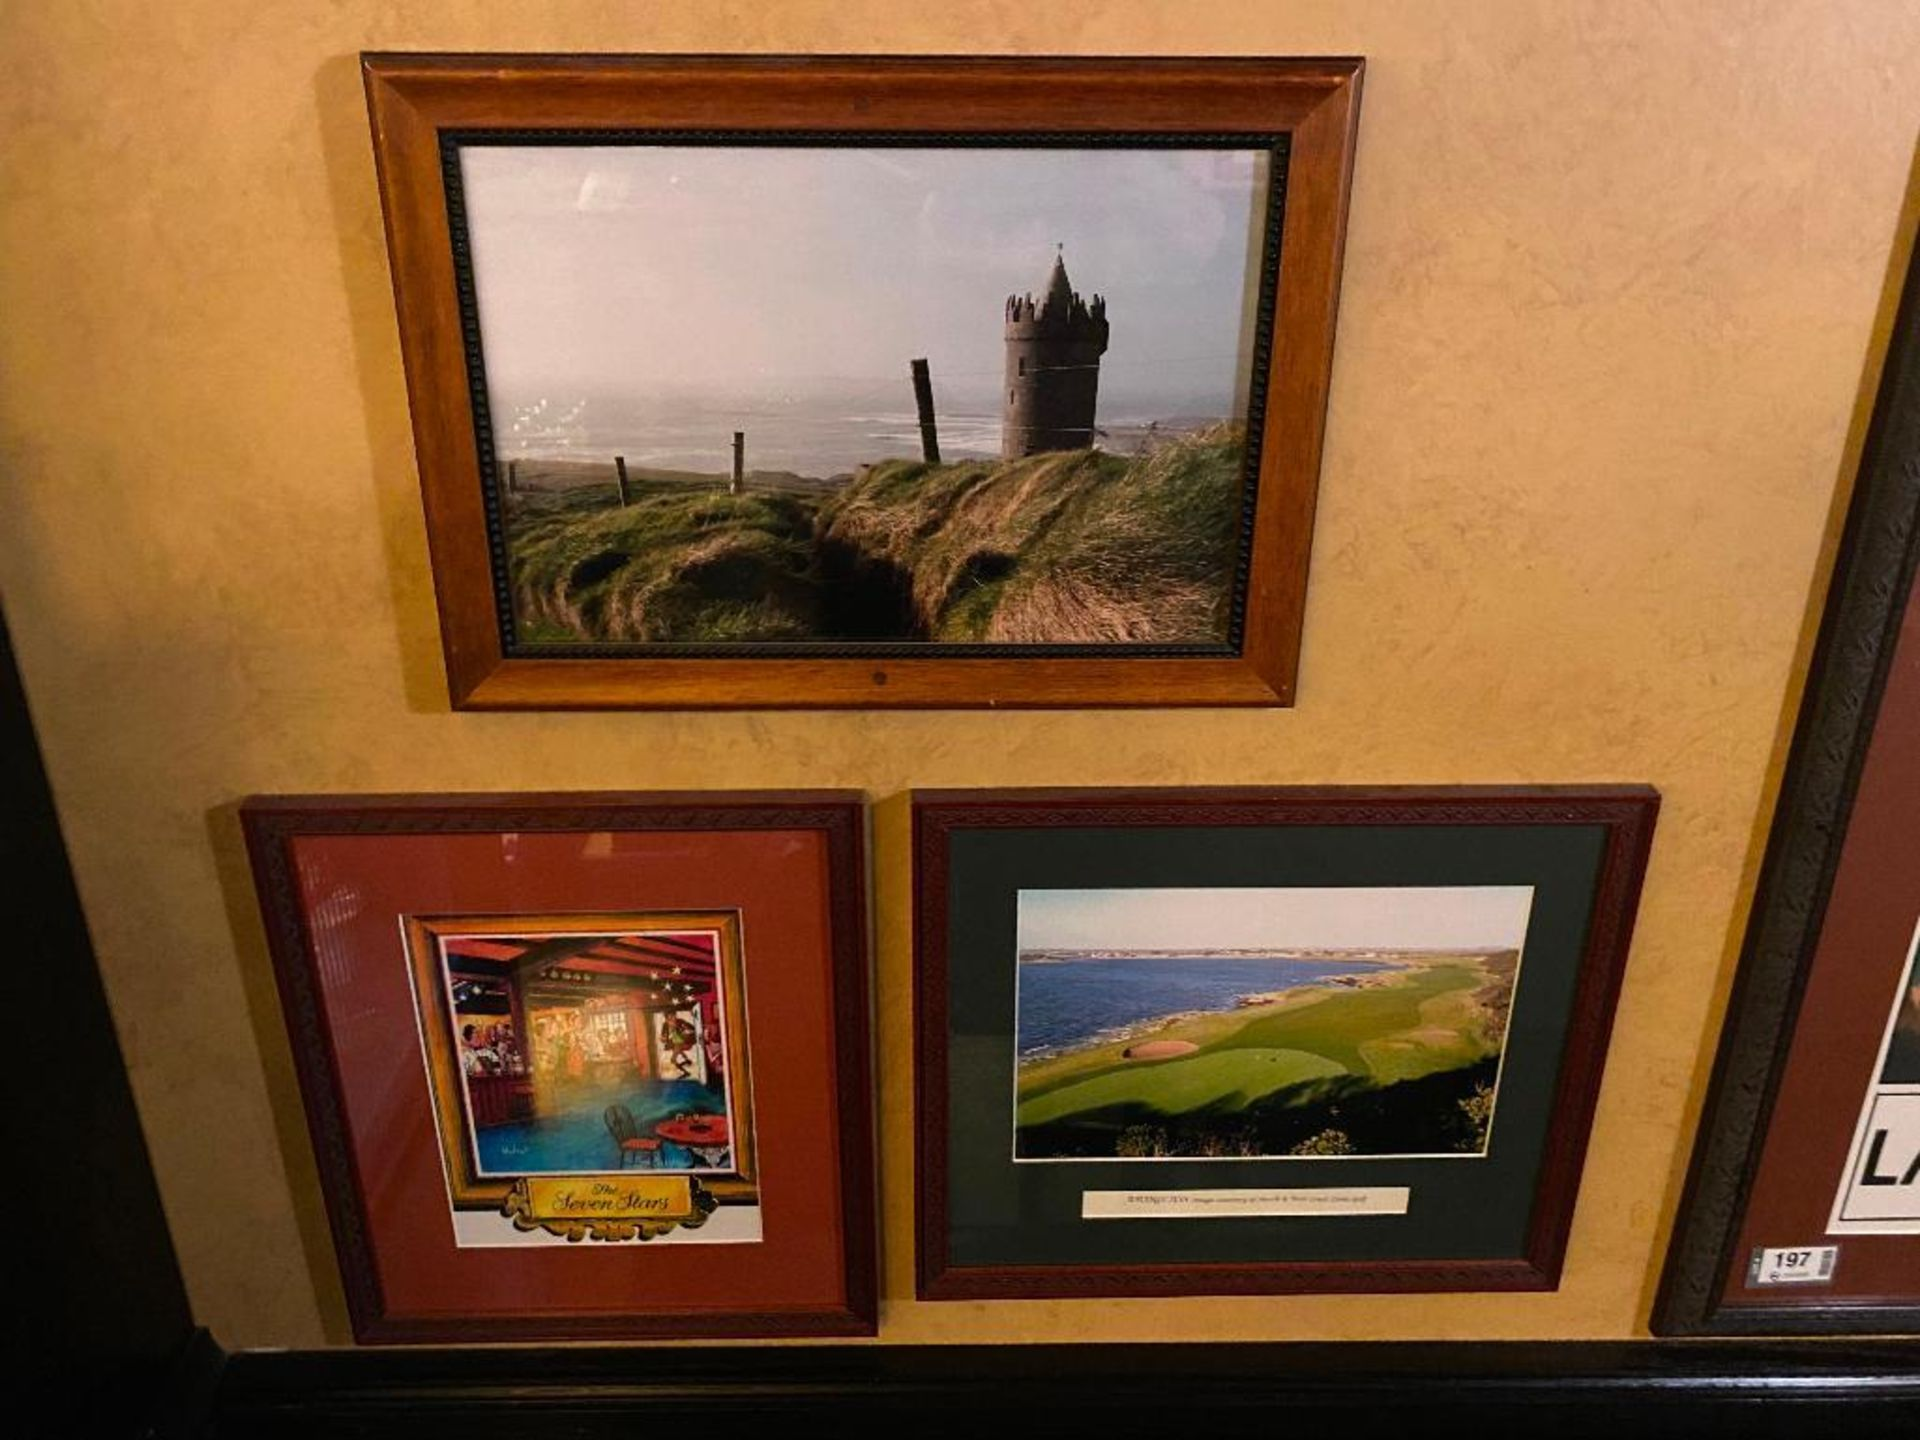 LOT OF (4) FRAMED MEMORABILIA PHOTOS - NOTE: REQUIRES REMOVAL FROM WALL, PLEASE INSPECT - Image 3 of 3